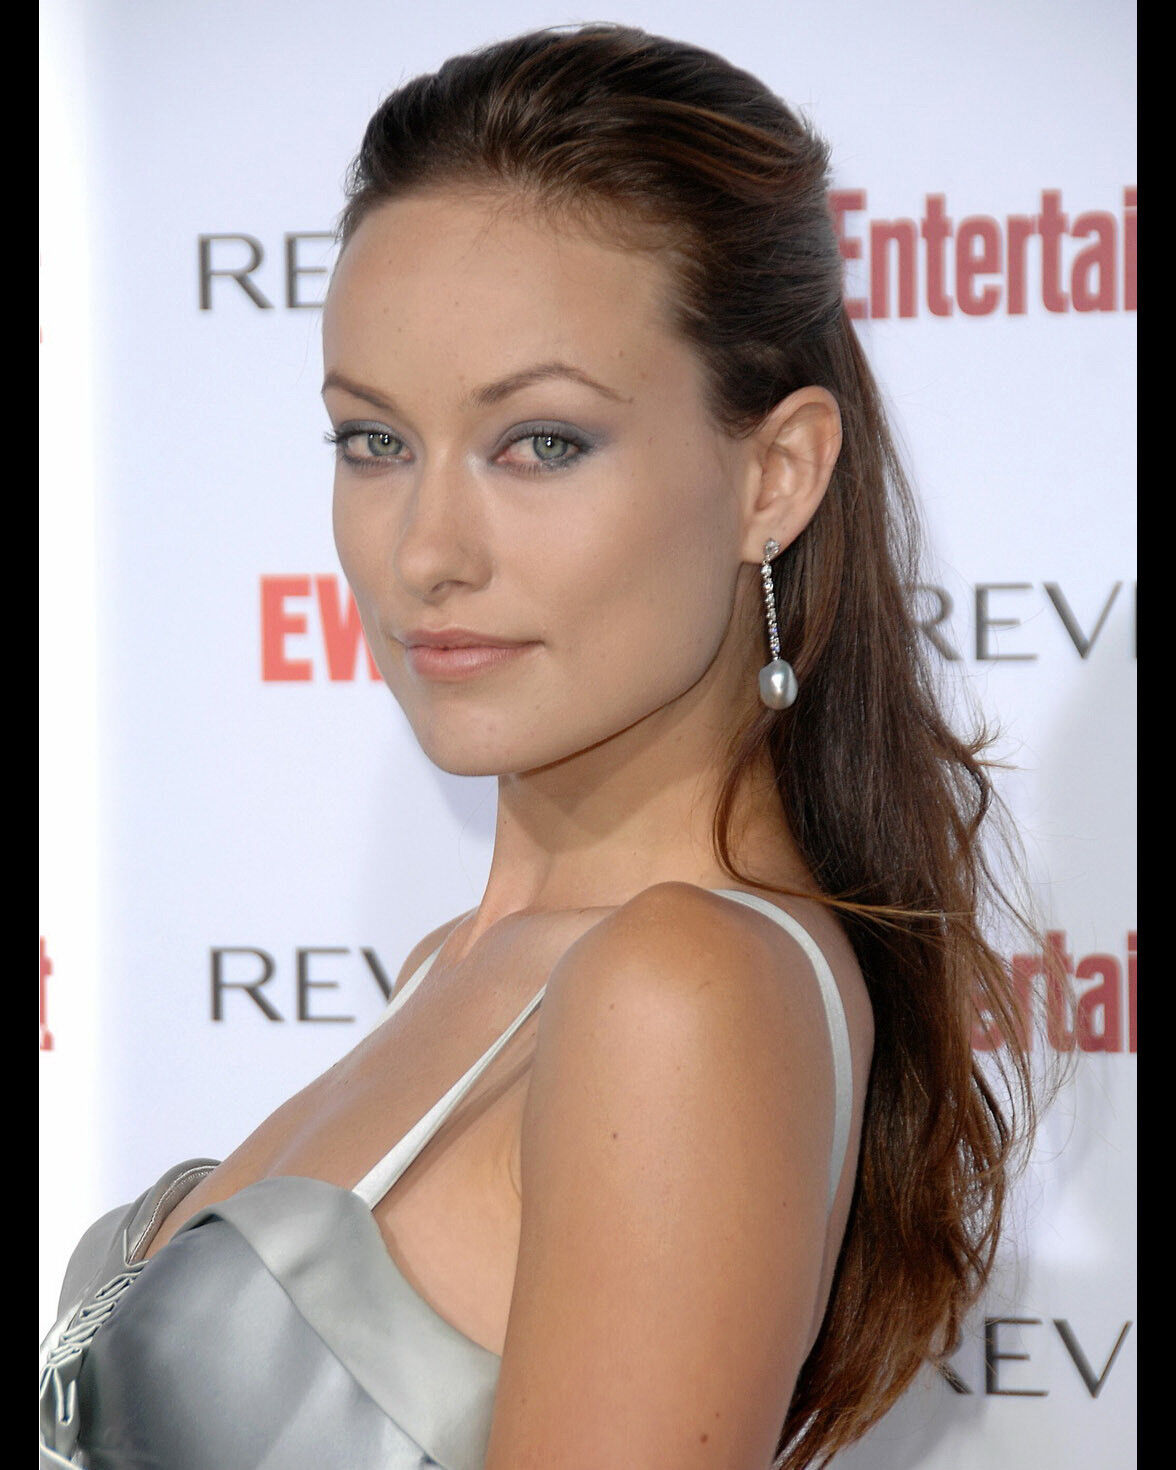 Olivia wilde 8x10 celebrity photo picture hot sexy 67